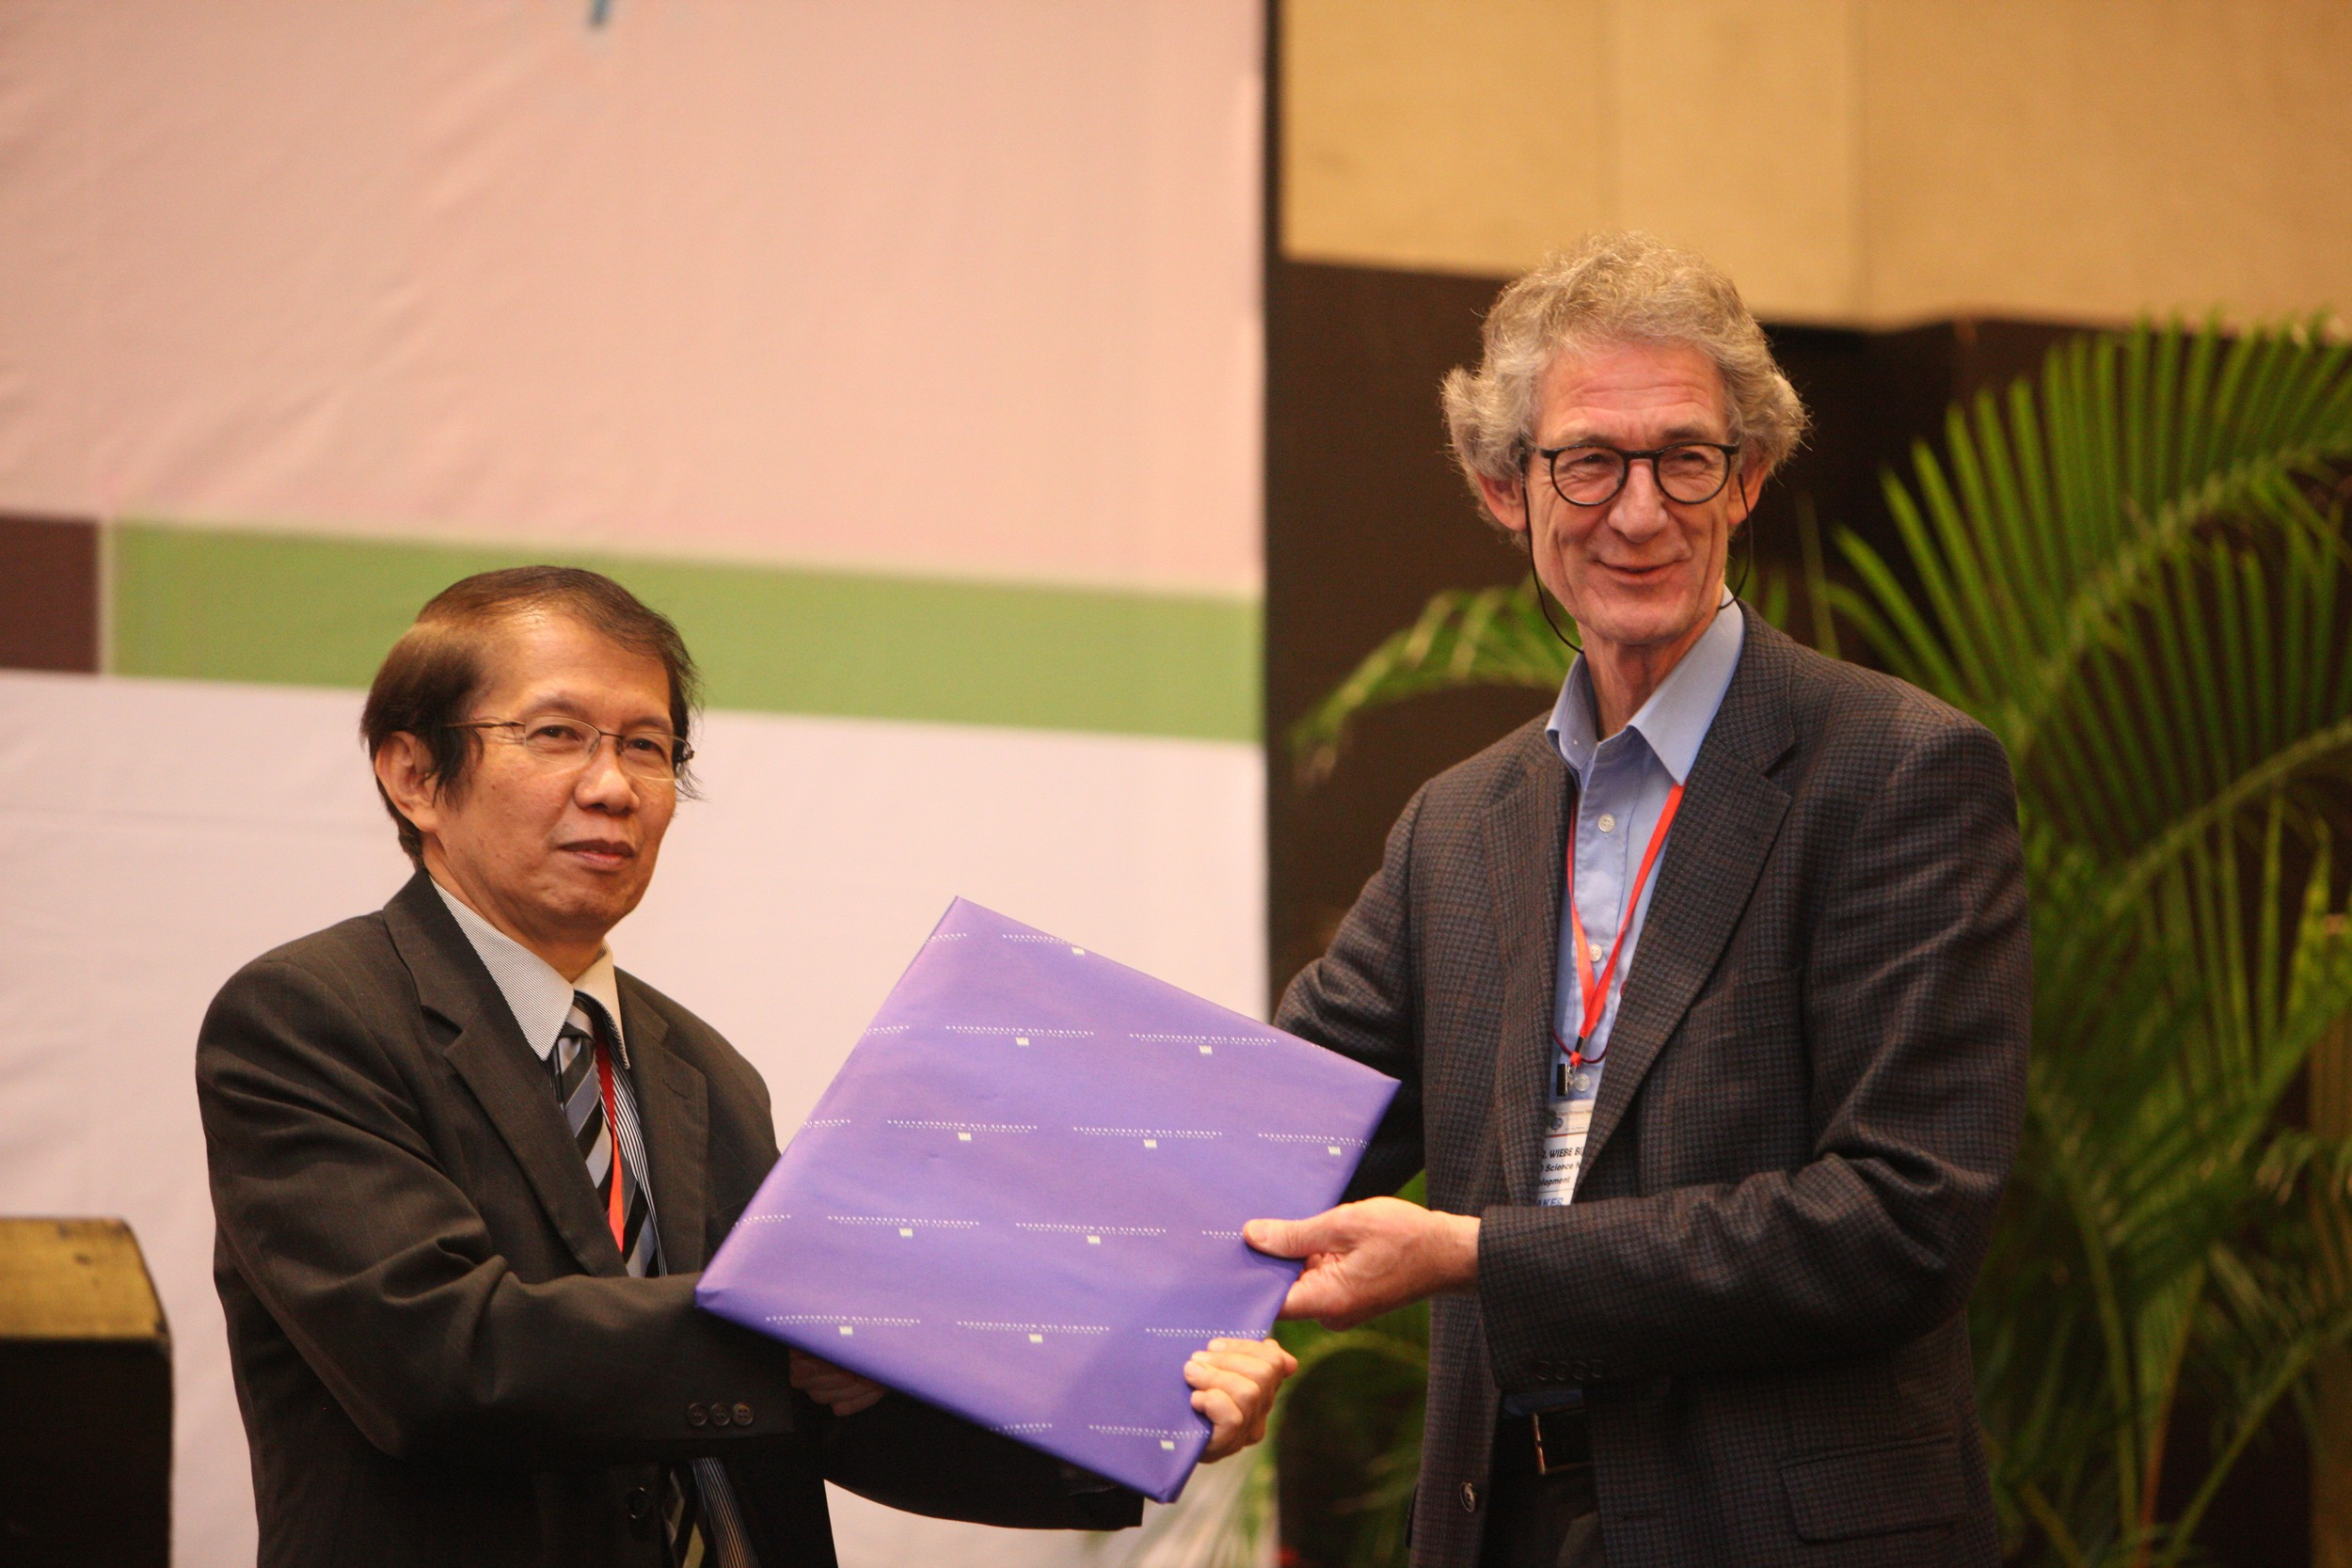 Prof. Wiebe Bijker gives present to Prof. David Muljono representing host university UNHAS